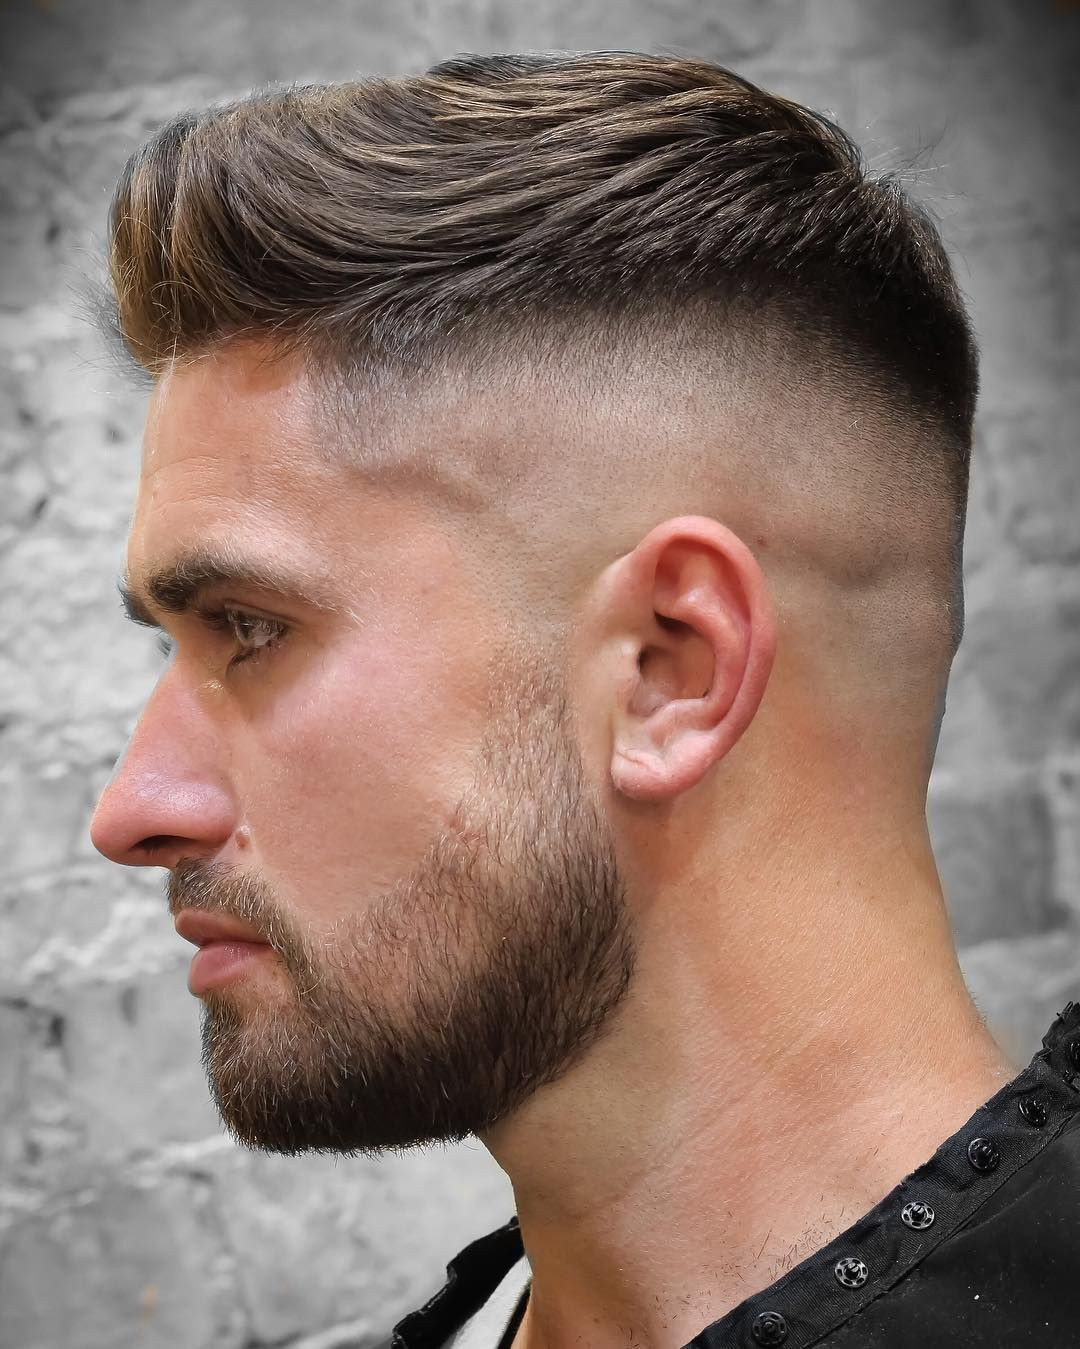 Best ideas about Mens Hairstyles Summer 2019 . Save or Pin Mens hairstyles 2019 Hair styles in 2019 Now.